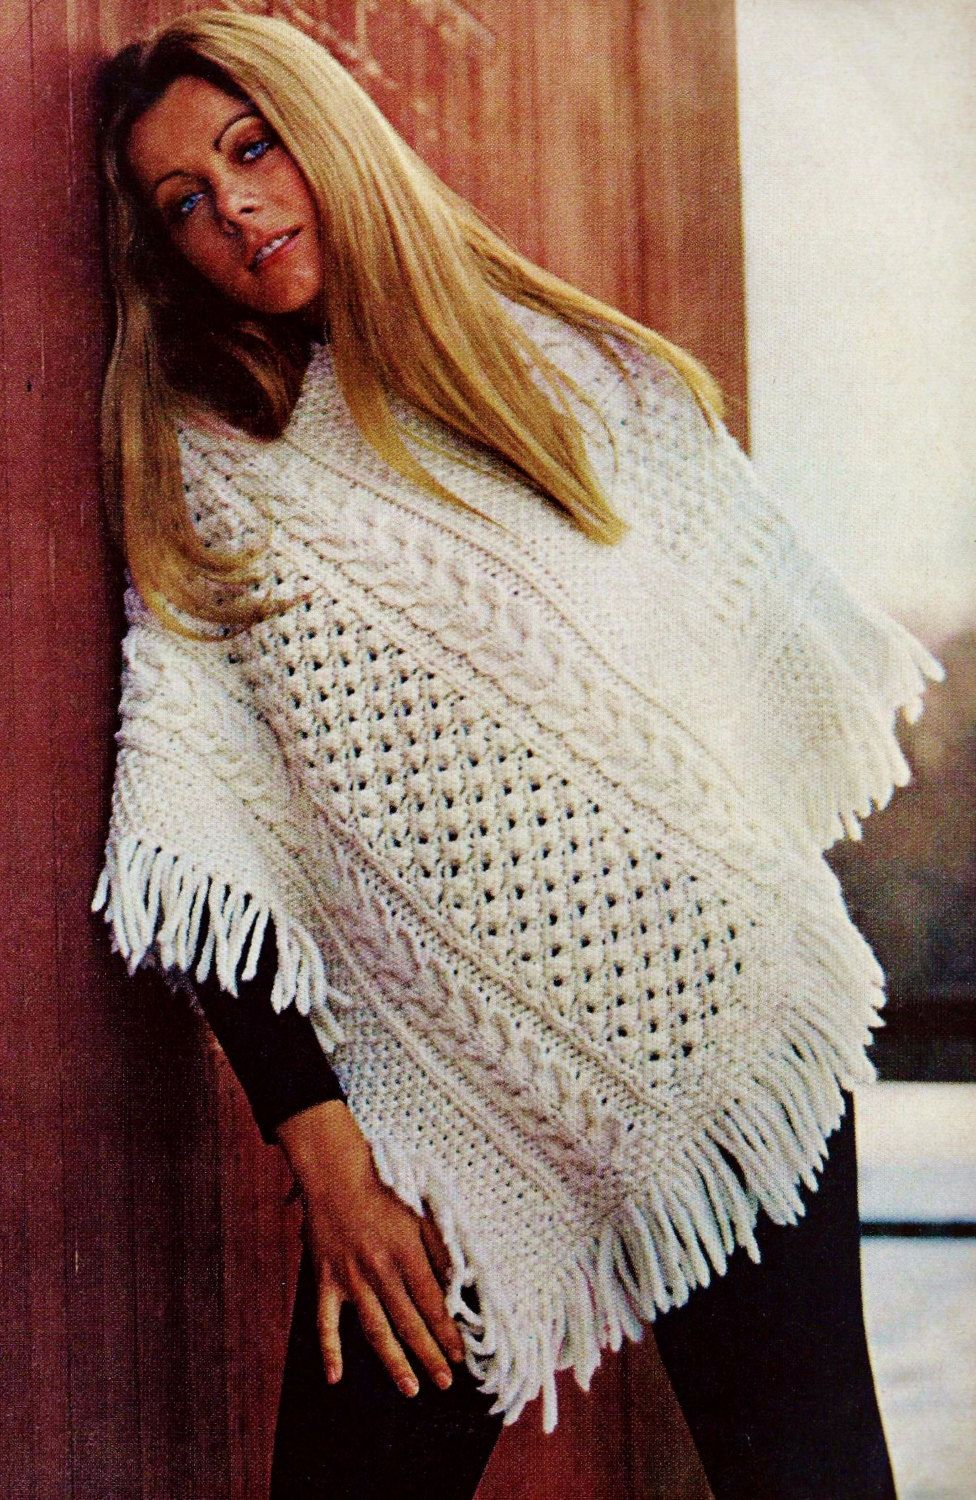 Knitting an Irish-style sweater with a pattern. Detailed diagram with photo and description for beginners